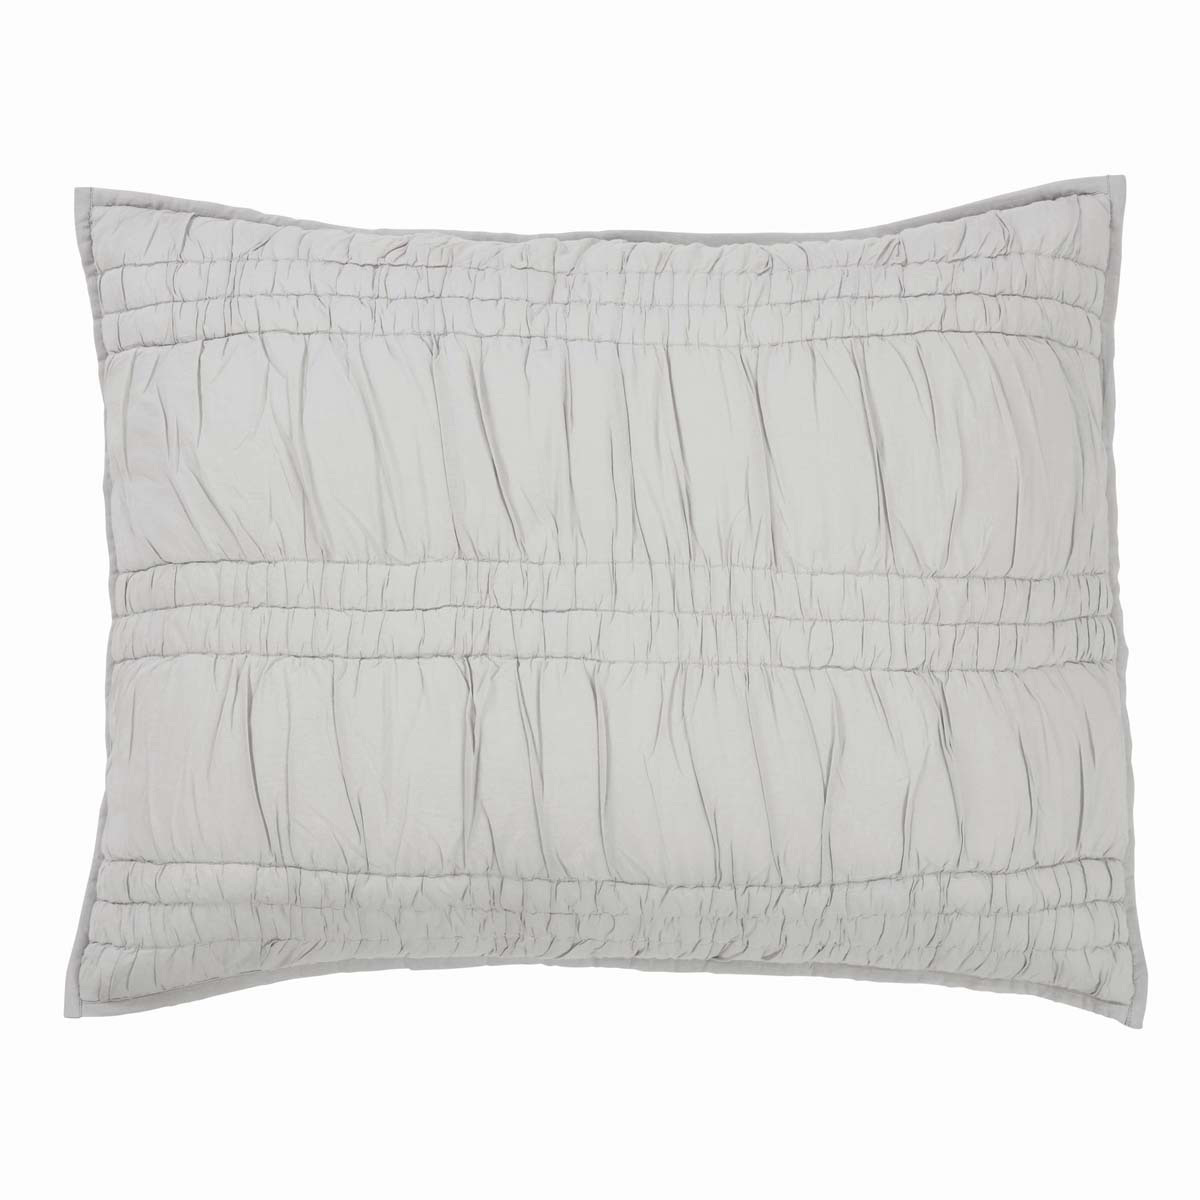 Natasha Chateau Grey Quilt Set, by VHC Brands